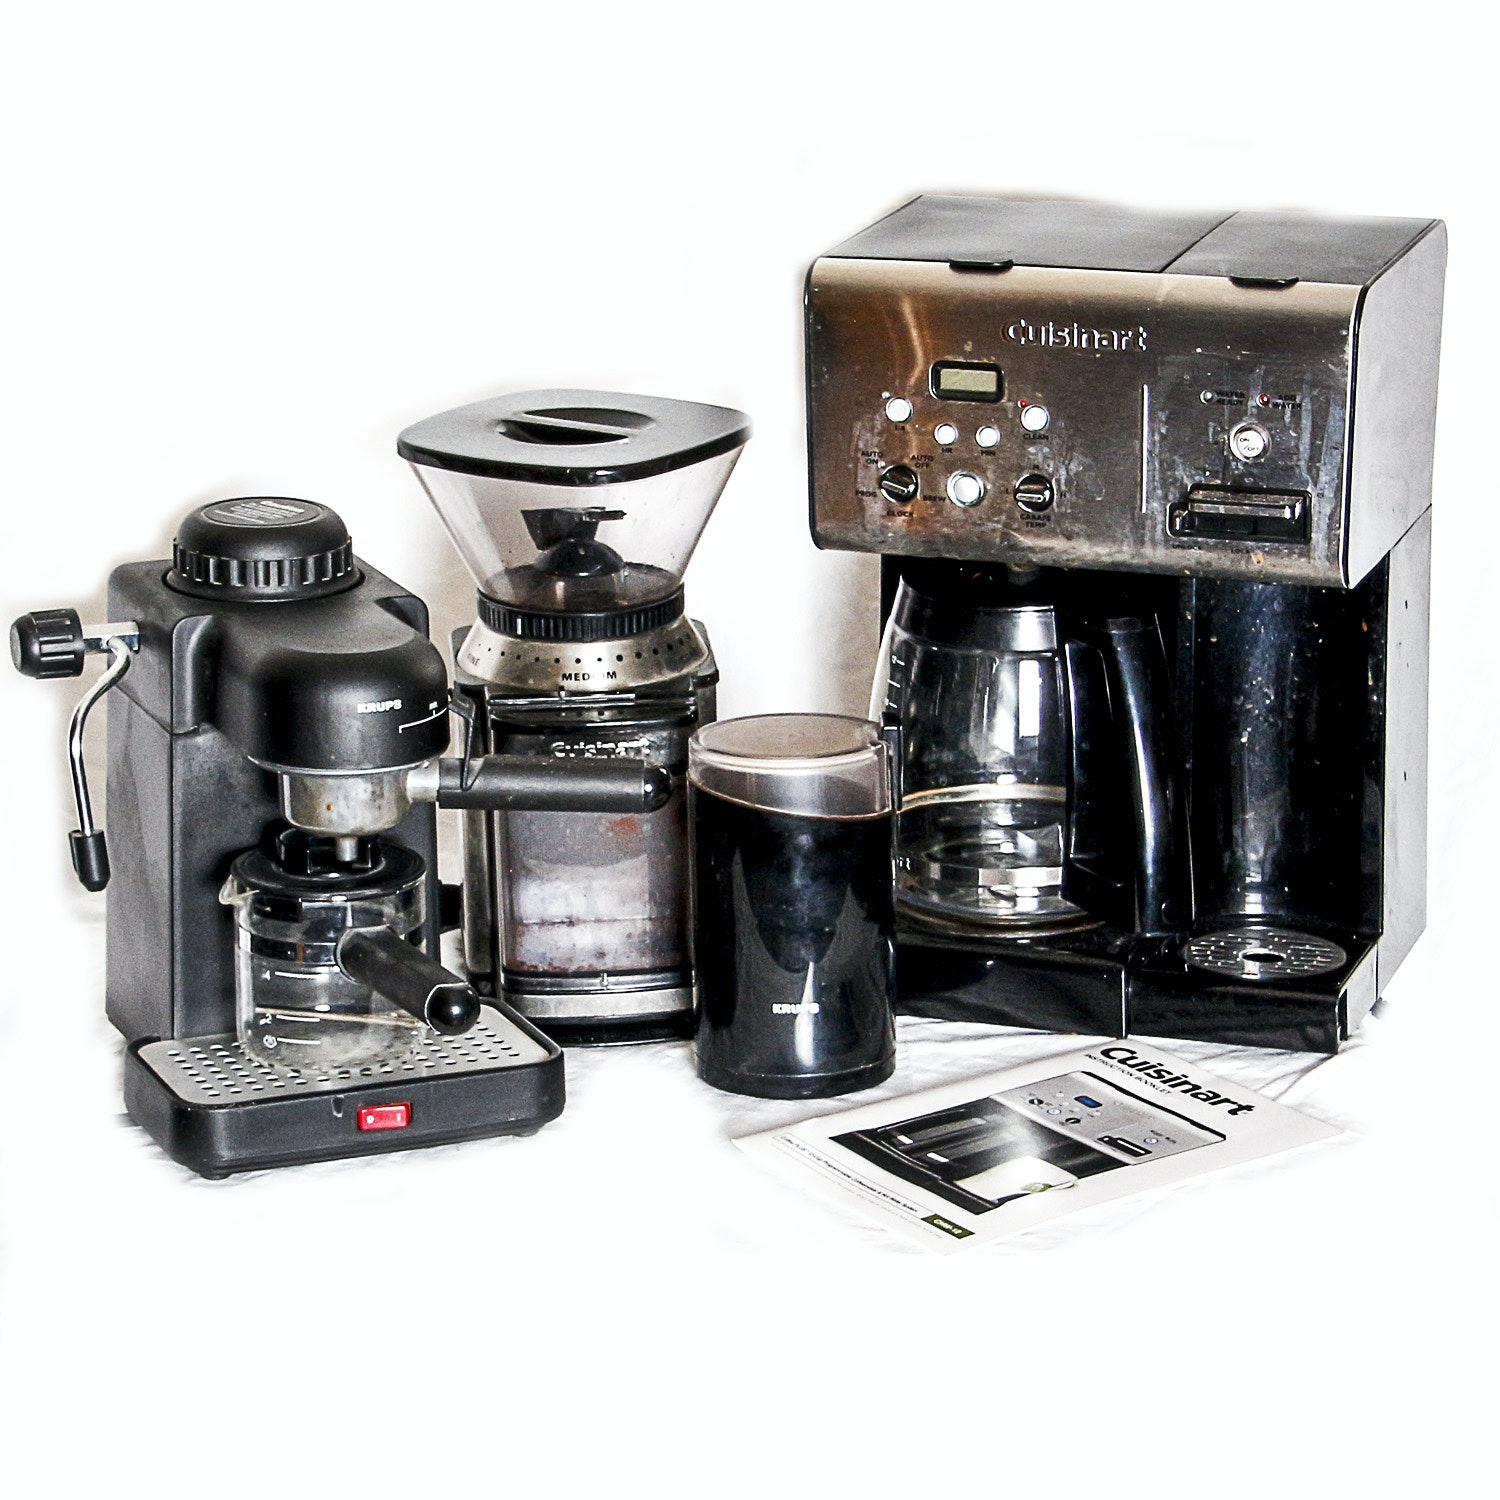 Cuisinart Coffee Maker CHW-12, Krups Espresso Maker and Coffee Grinders